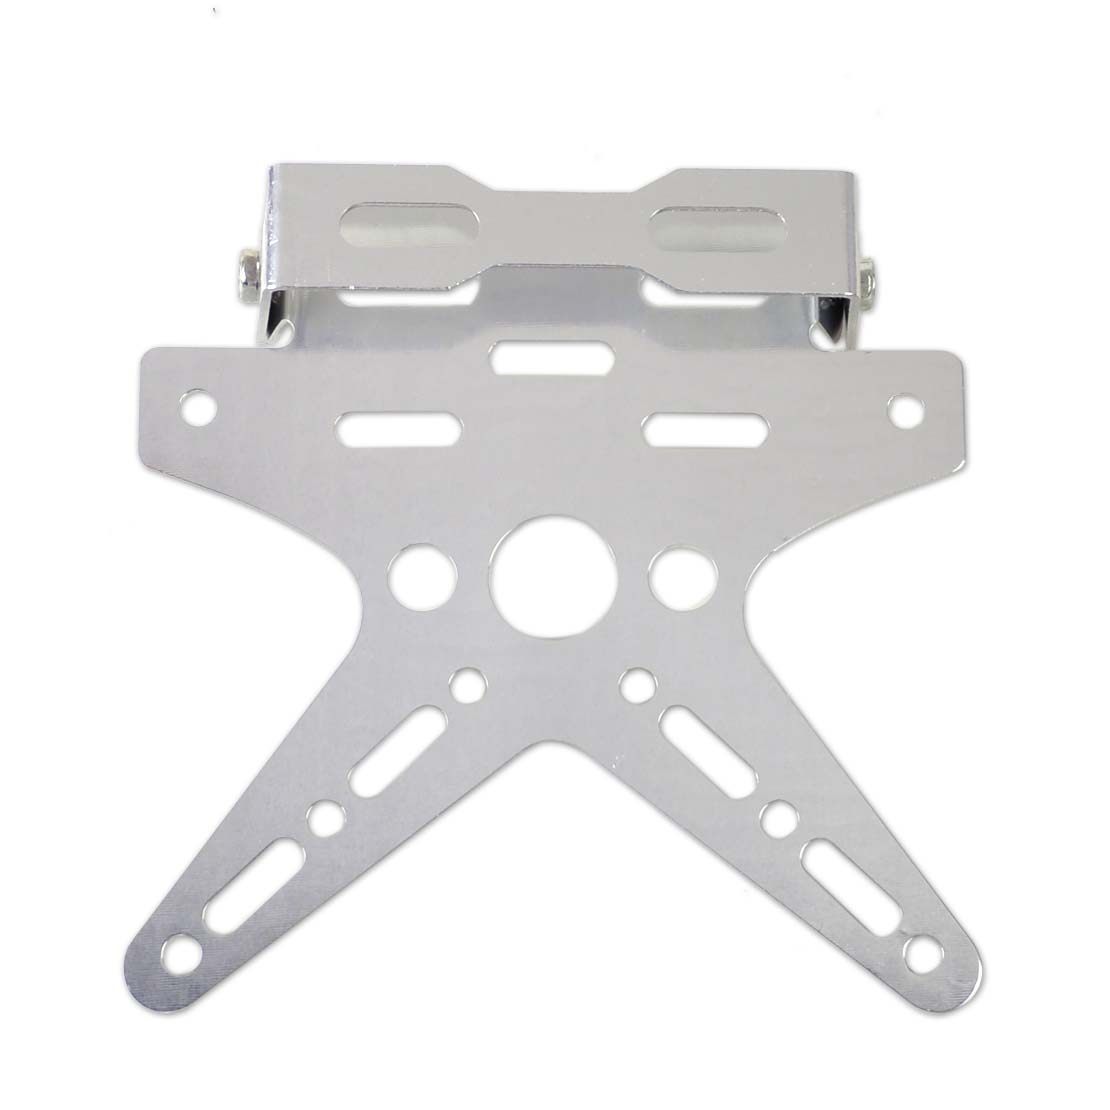 Adjustable Number License Plate Mount Holder Bracket